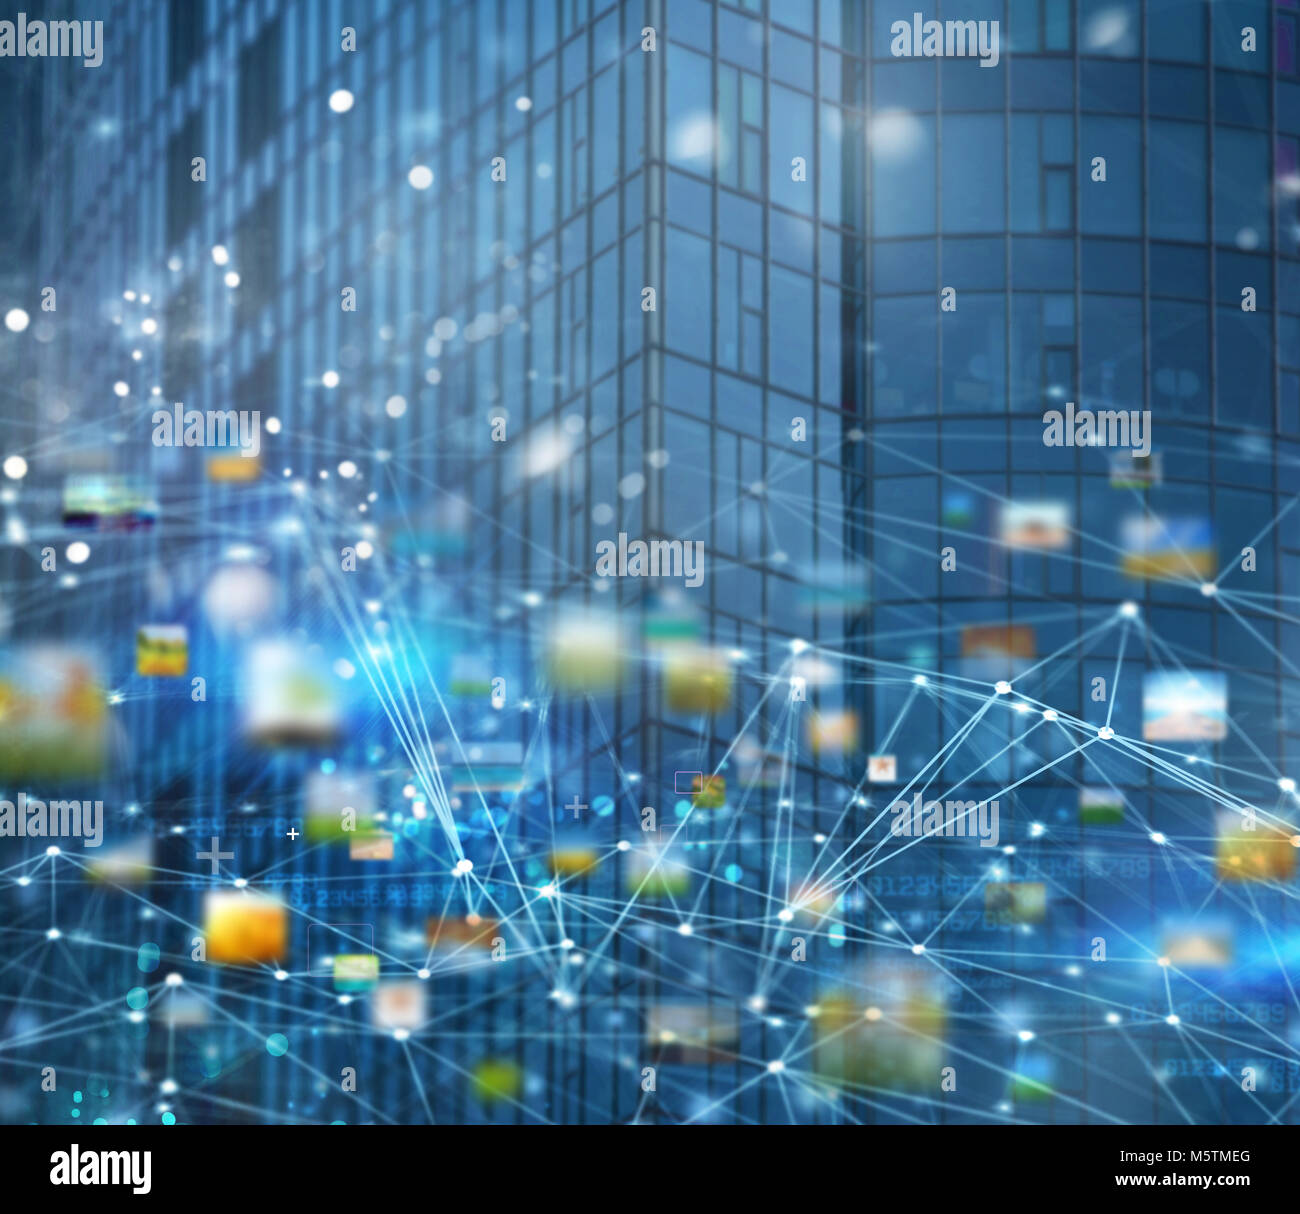 Abstract internet connection network background with motion effects - Stock Image